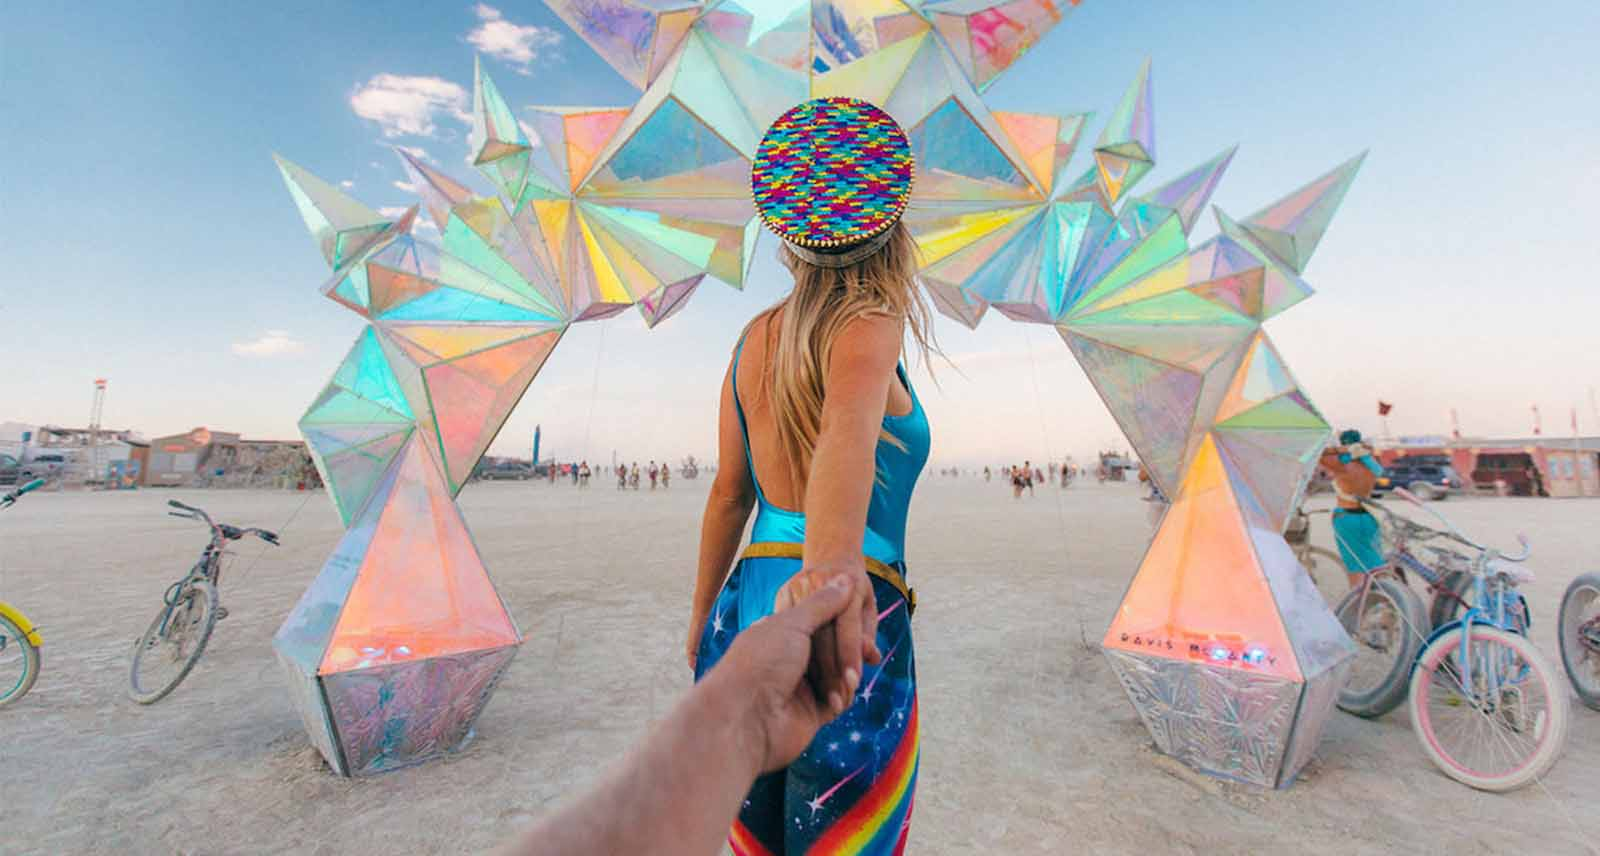 Burning Man 2020 may have been moved to online, but that didn't stop lifetime burners from trying to put on their own festival in the playa.